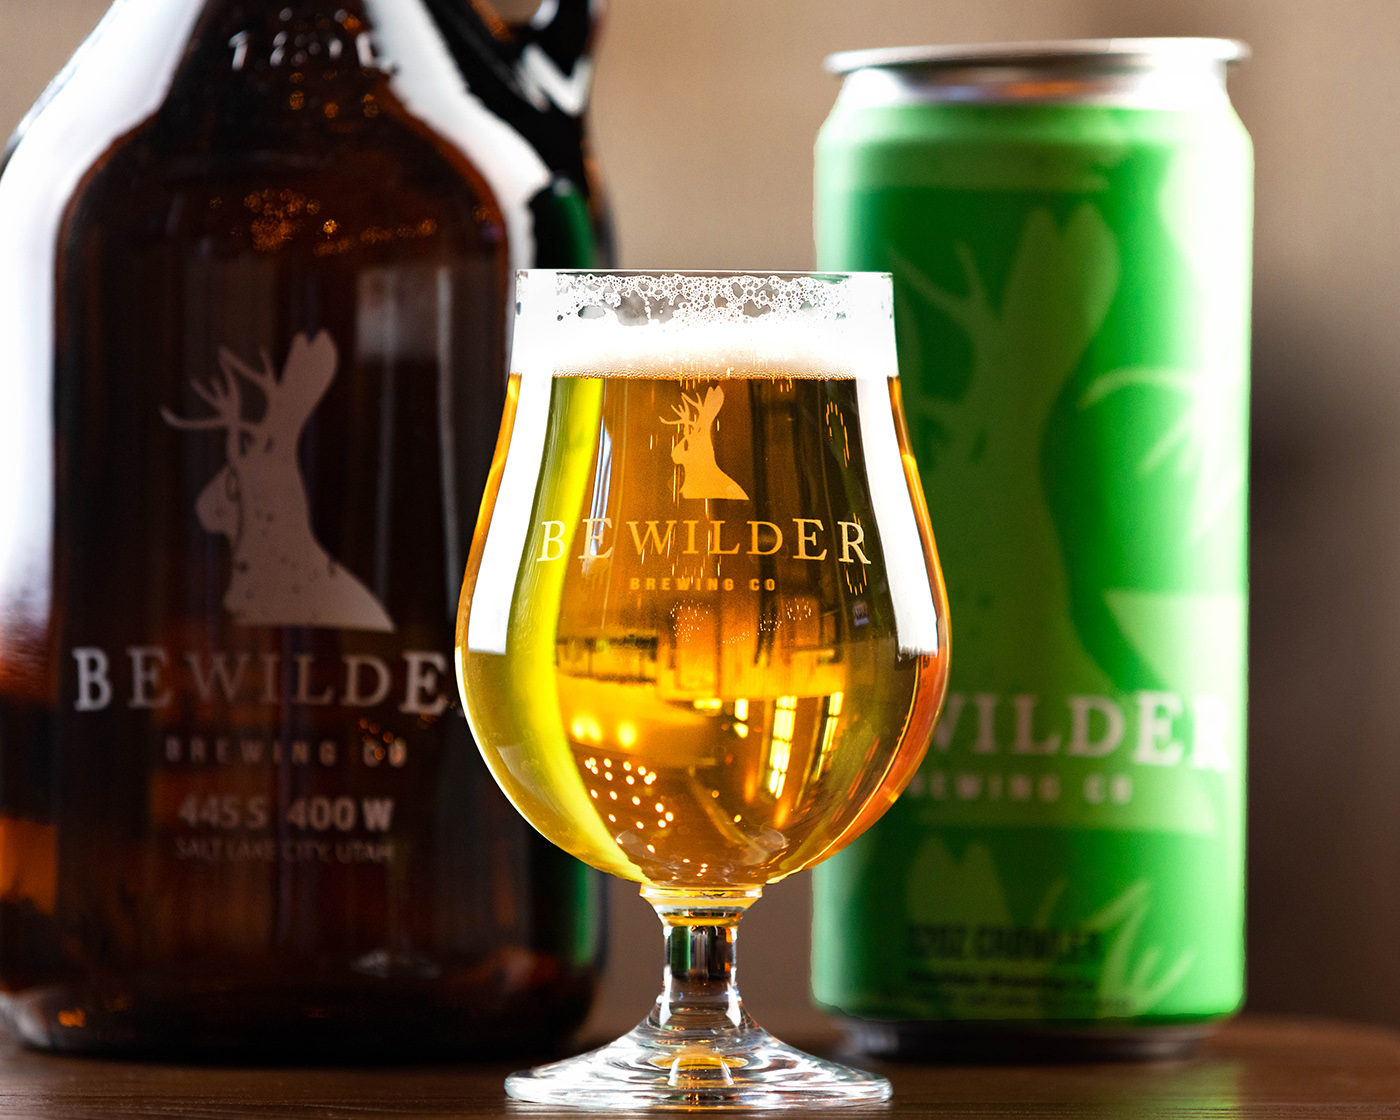 Bewilder's Oat Pale Lager has pleasant aromas of florals and grain.